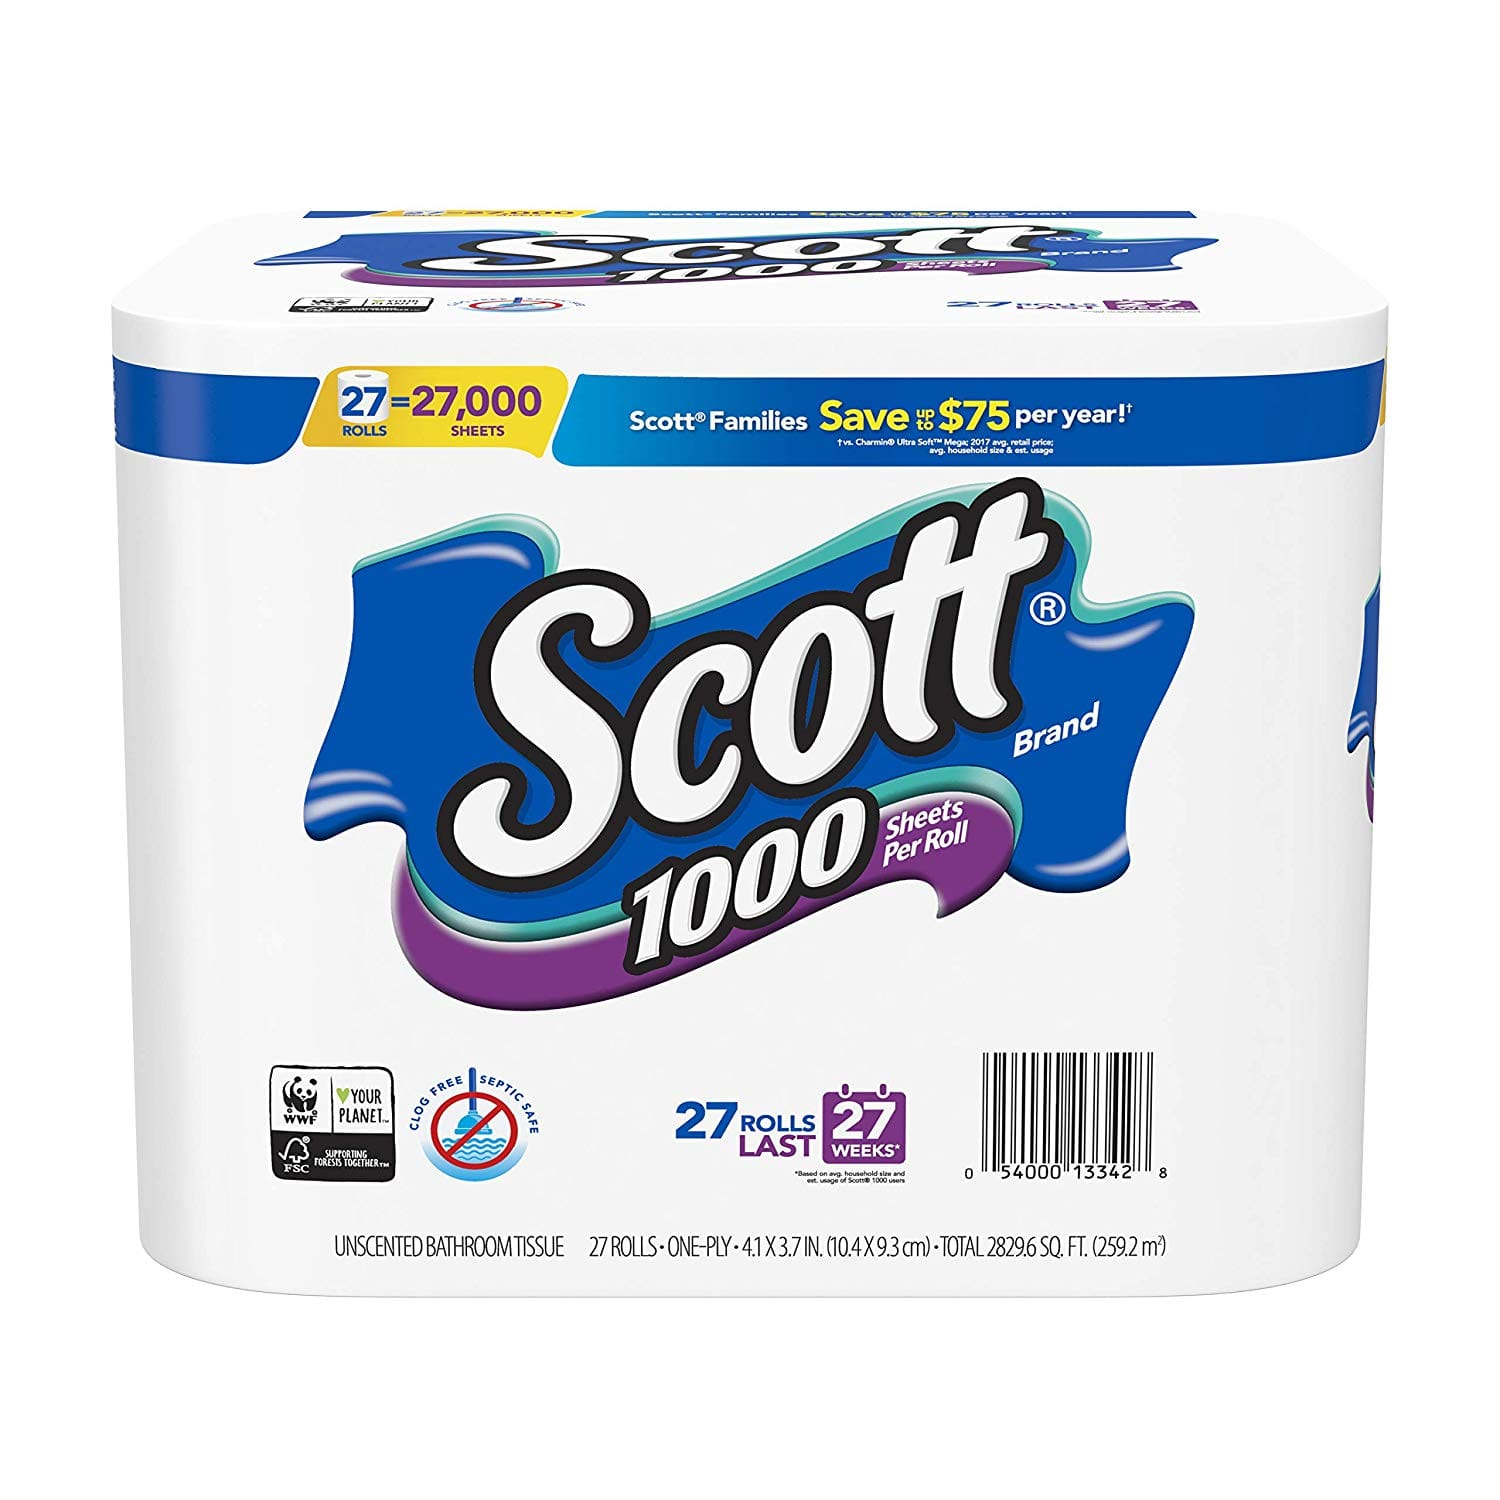 Scott 1000 Sheet Roll Toilet Paper 3 27 ct. Packs (81 Rolls Total) $40.97 AC and 15% Subscribe & Save 5+ Discount @ Amazon